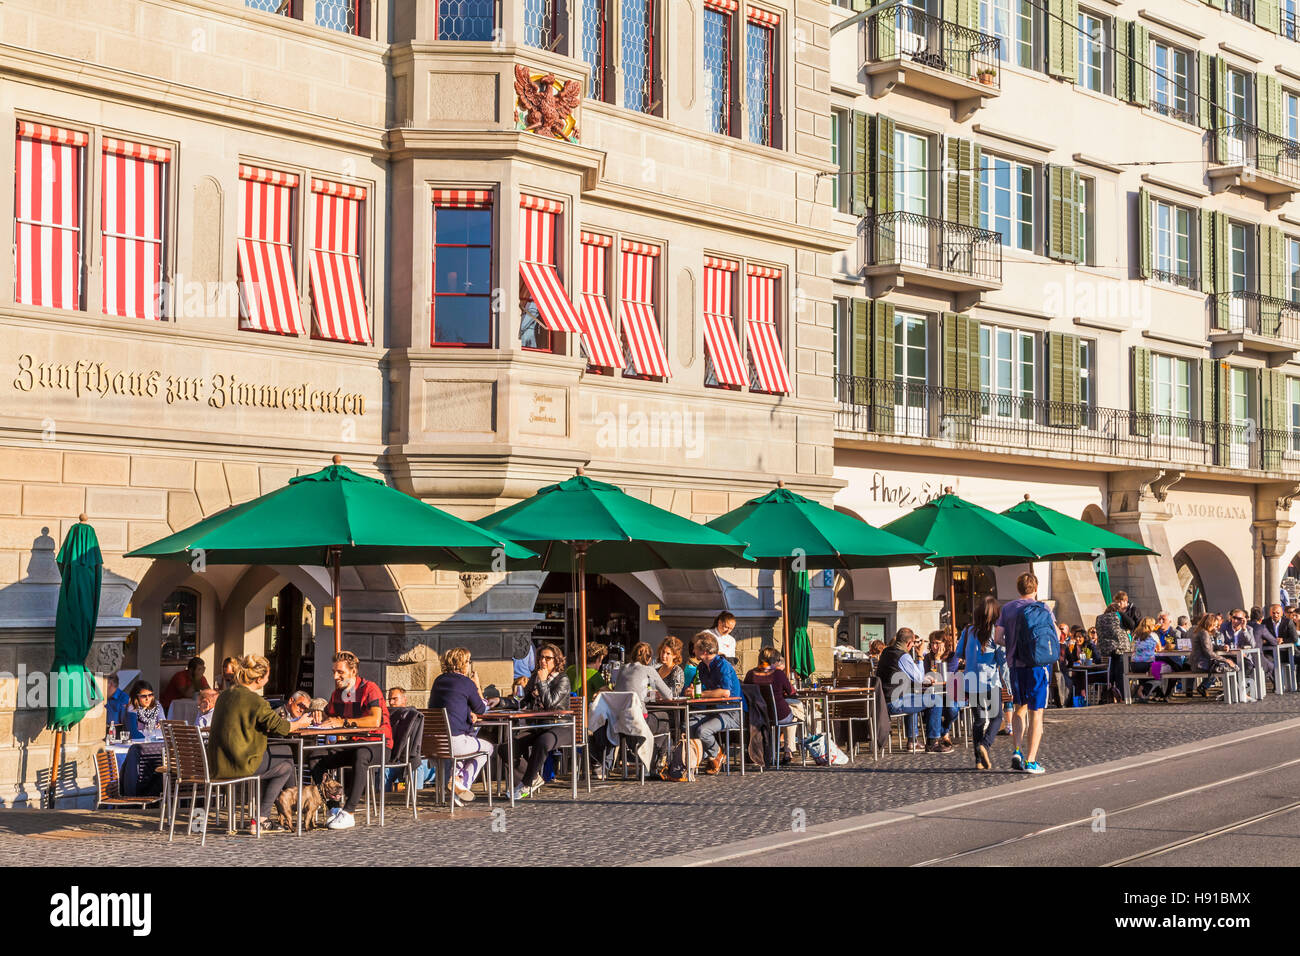 RESTAURANTS AT LIMMATQUAI QUAY, ZIMMERLEUTEN GUILD HOUSE, OLD TOWN, ZURICH, SWITZERLAND - Stock Image